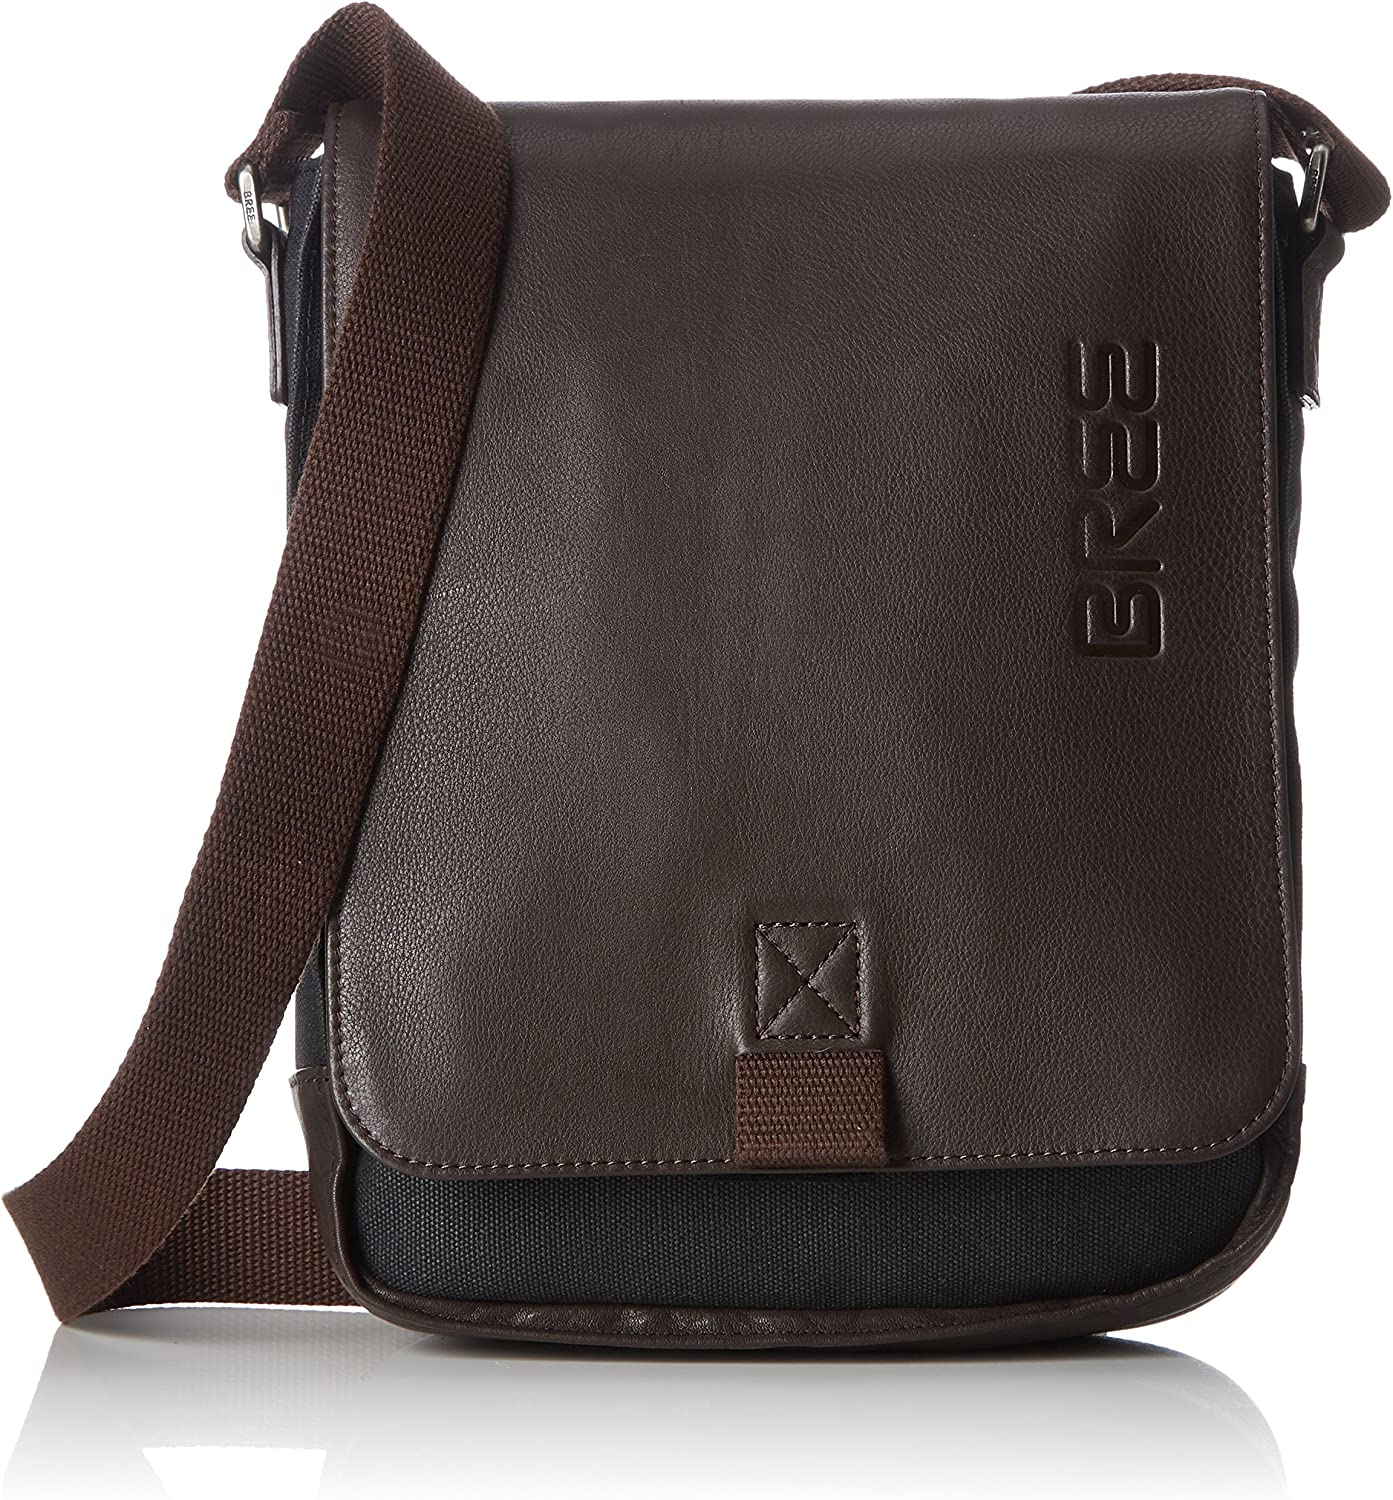 BREE Punch Casual 52, Anthra d. Br, Sh. Bag, Unisex Adults' Shoulder grey (Anthra.), 6.5x26x21 cm (B x H T)